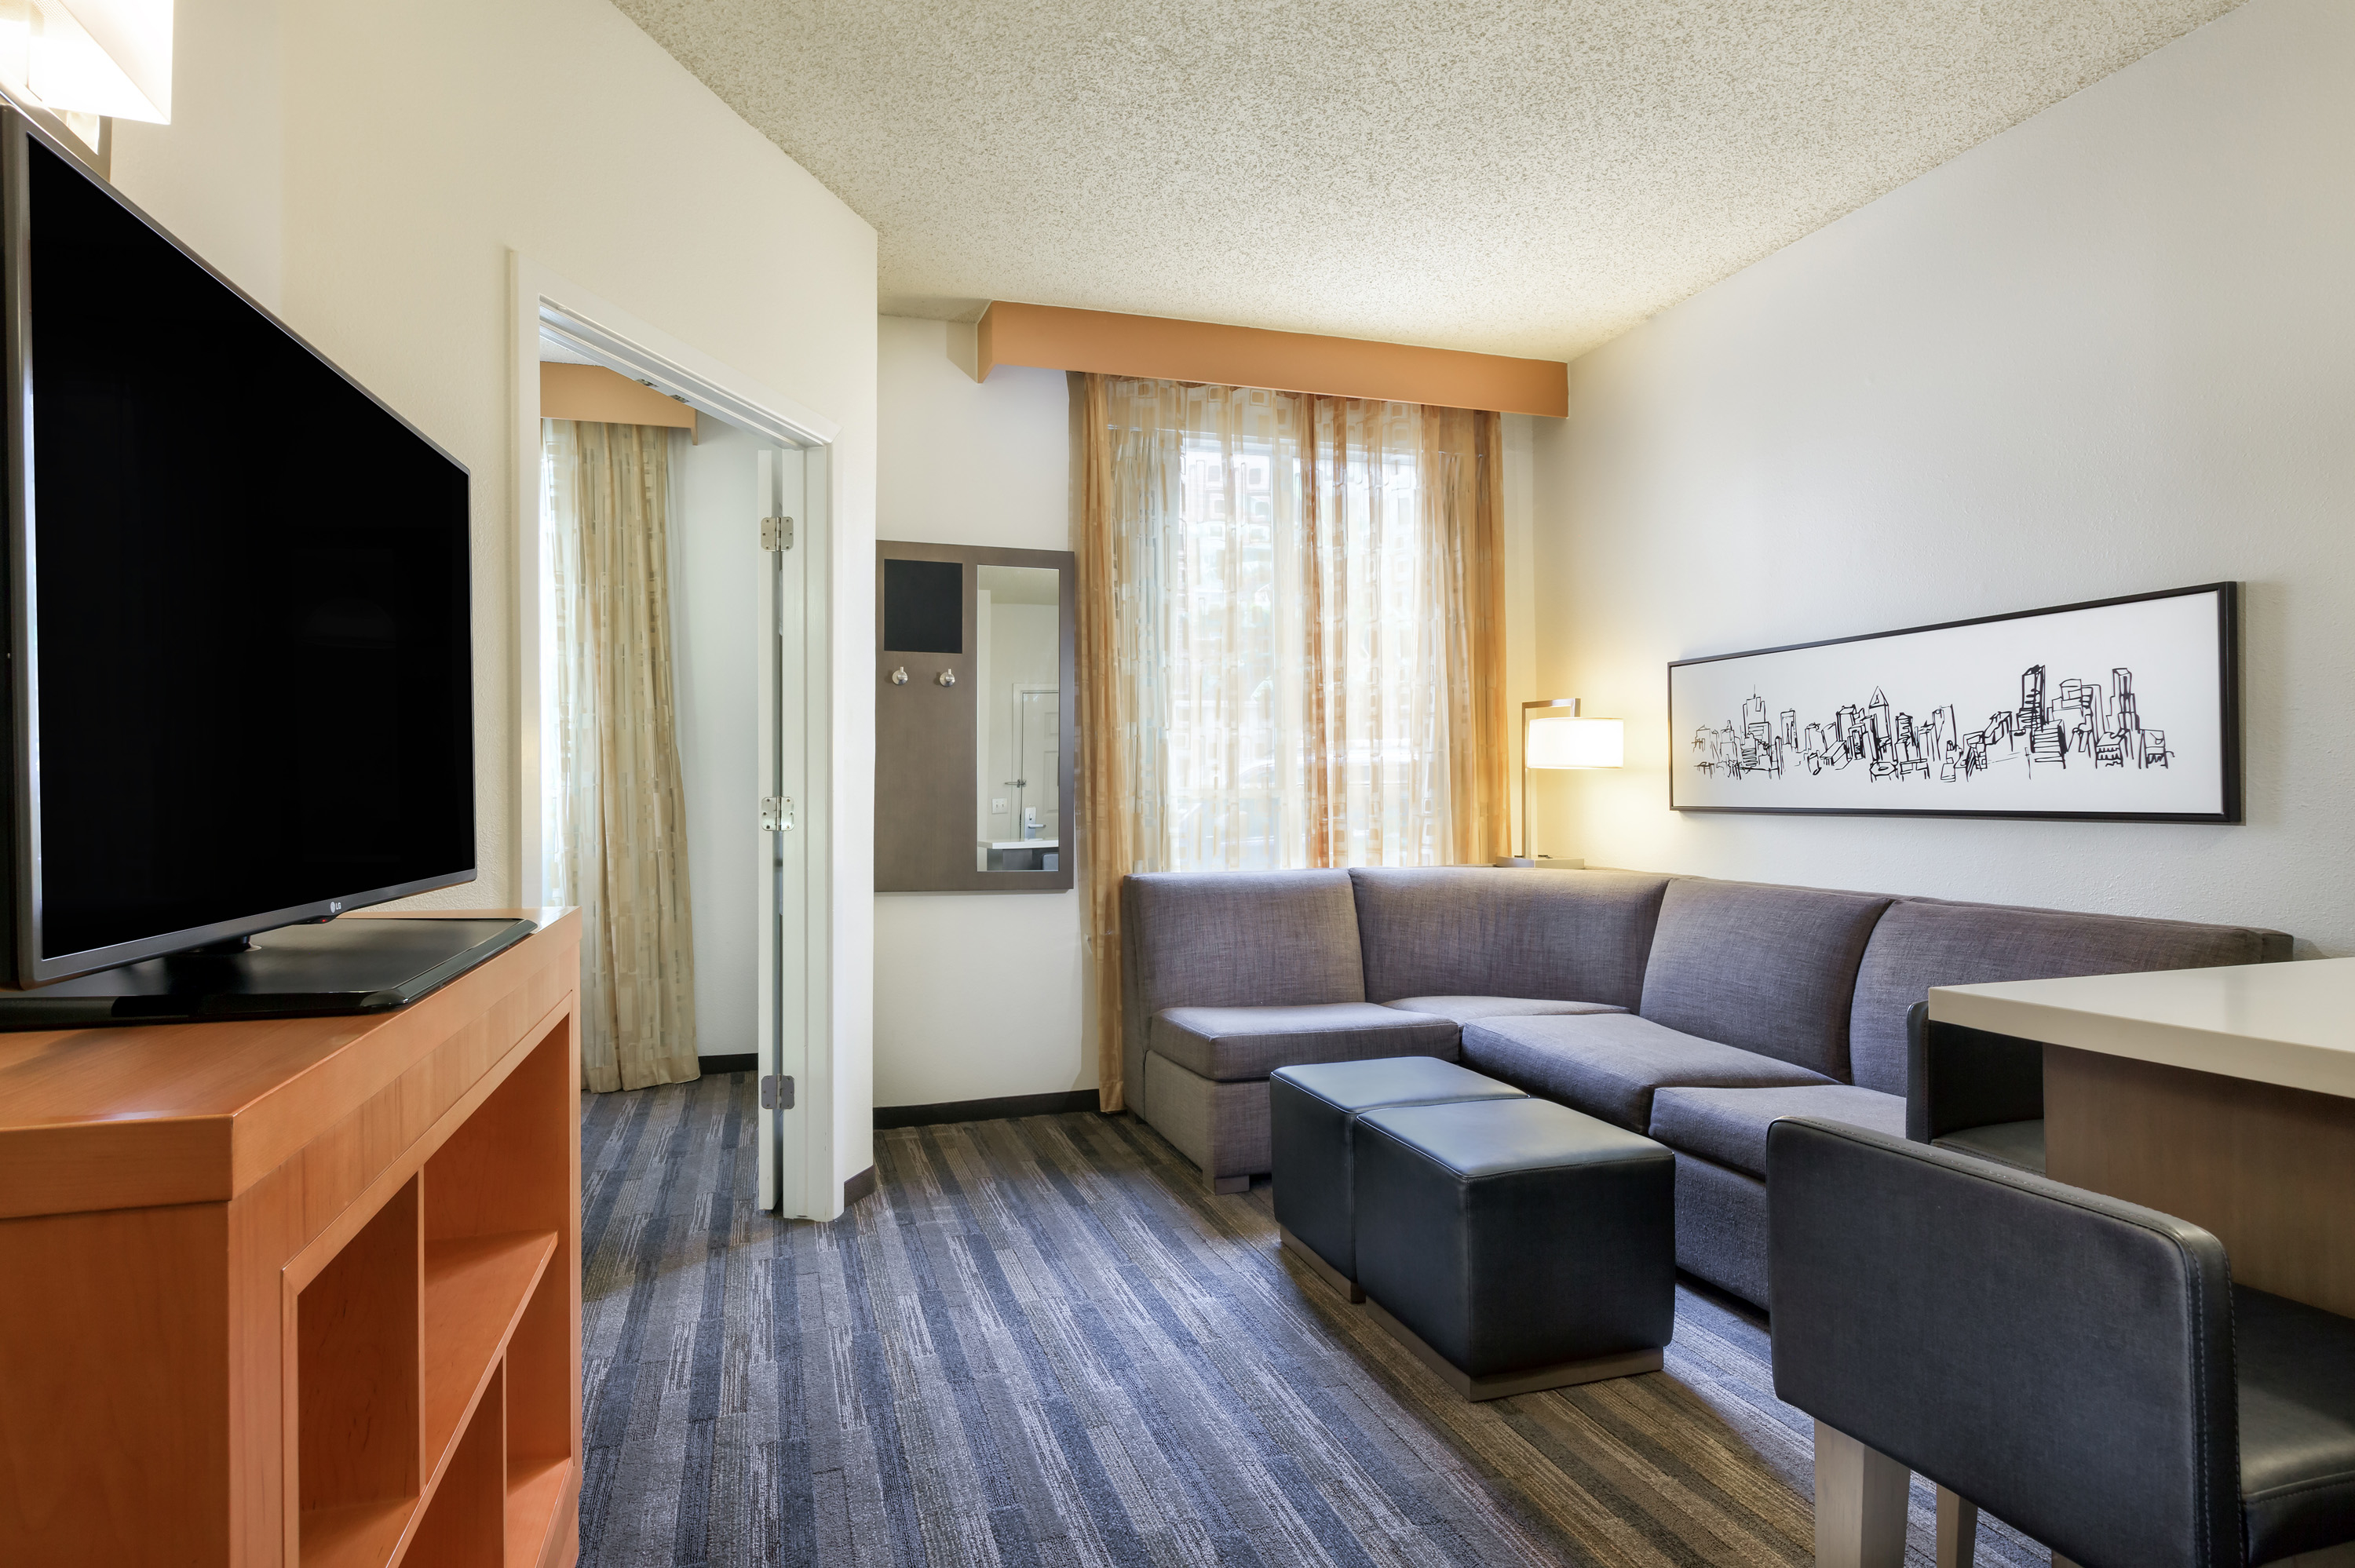 Hyatt house coupon codes - Play asia coupon 2018